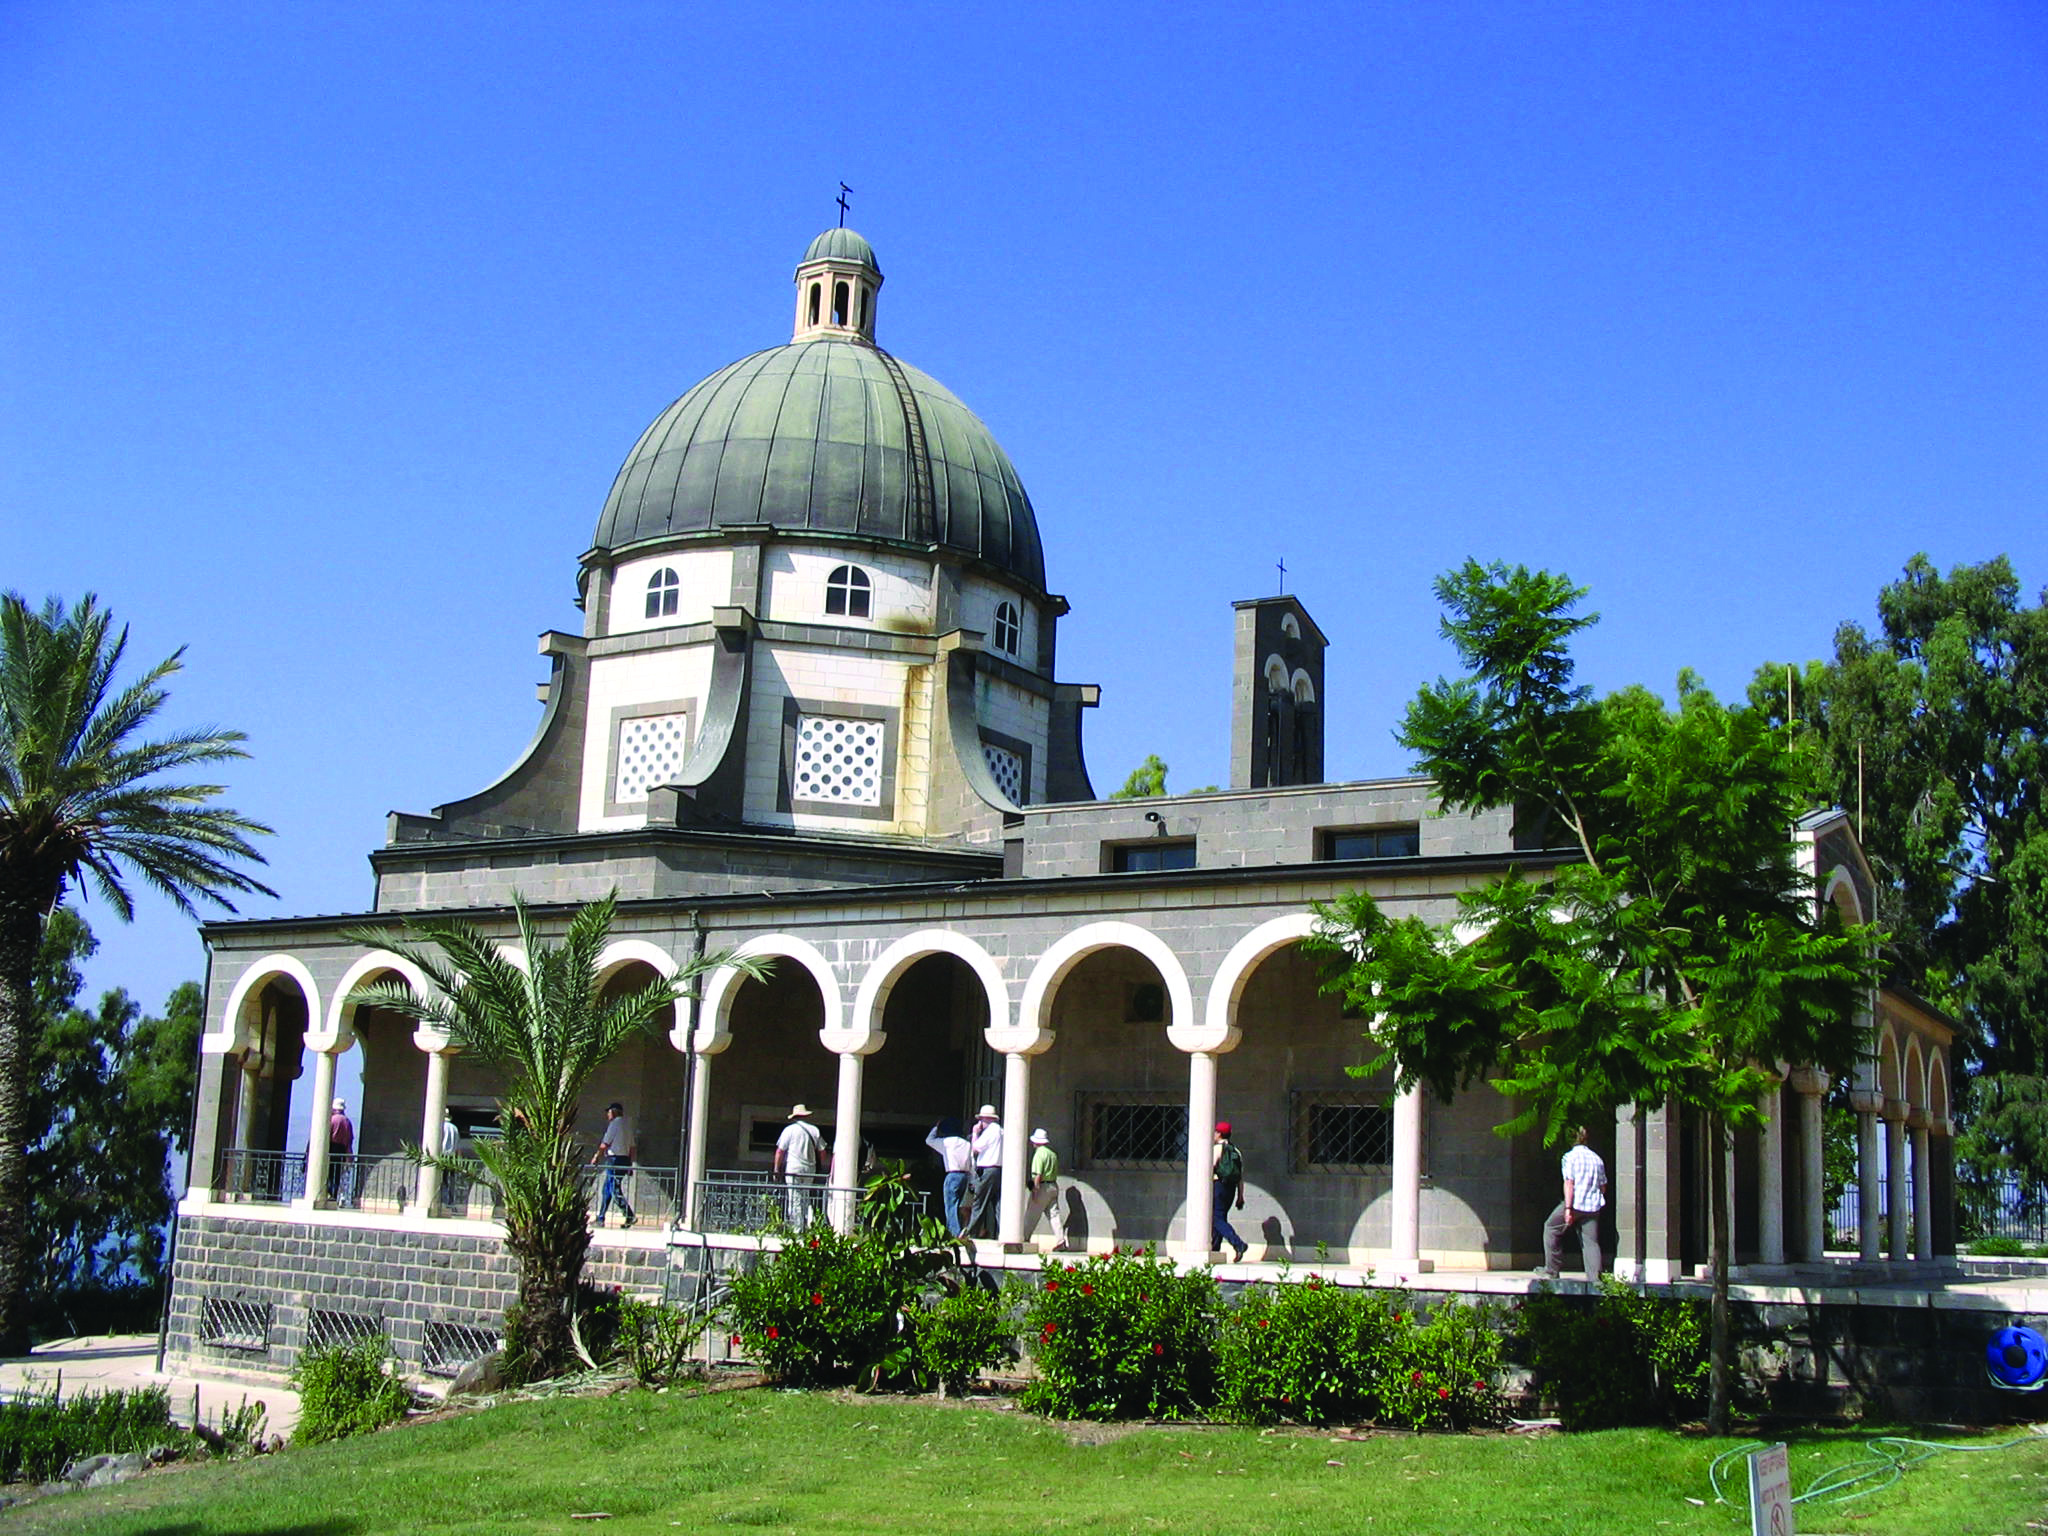 Church of the Beatitudes near Tabgha, Israel | Saint Mary